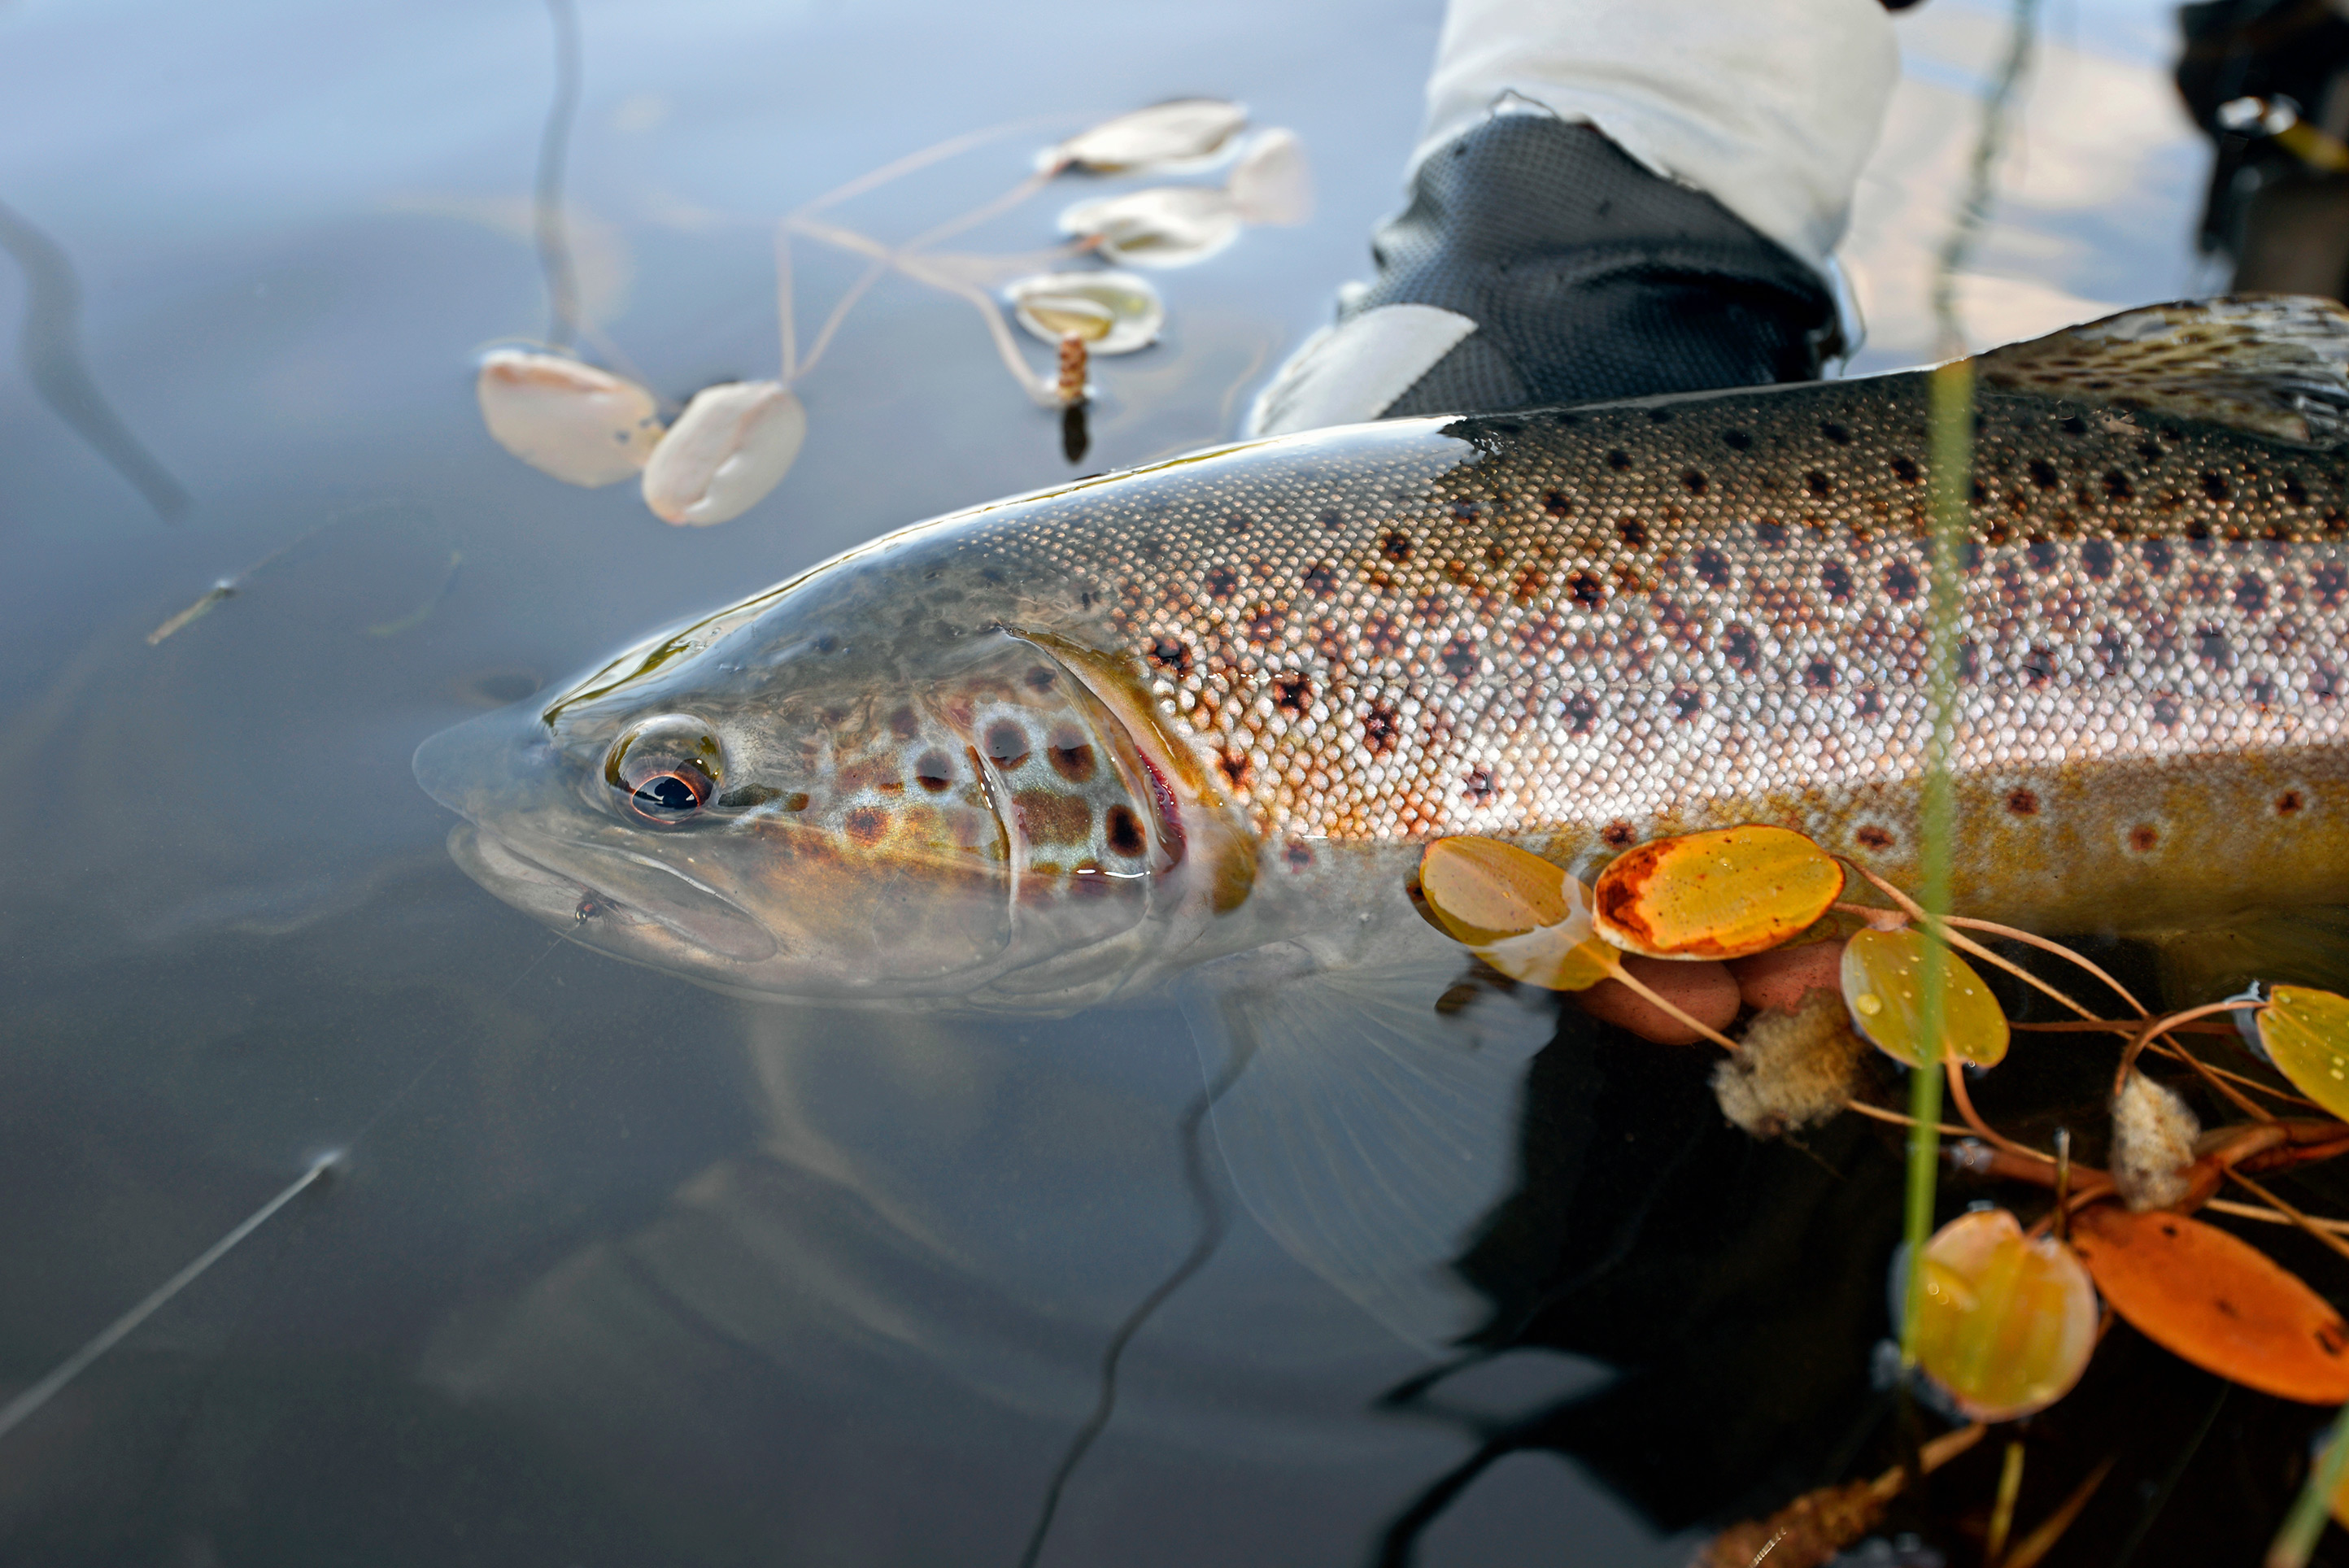 This is one of the best places on earth to sight cast to wild brown trout with a fly rod.